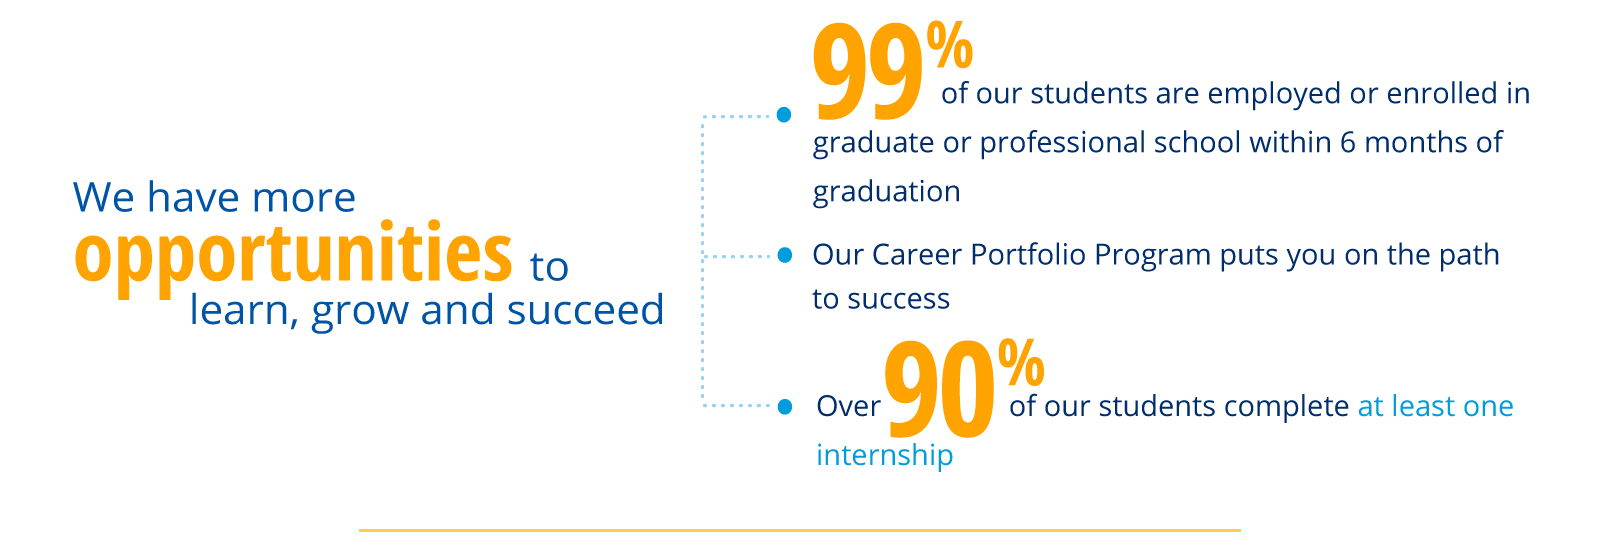 We have more opportunities to learn, grown and succeed. 99% of our students are employed in graduate or professional school within 6 months of graduation. Our Career Portfolio Program puts you on the path to success. 90% of our students complete at leas